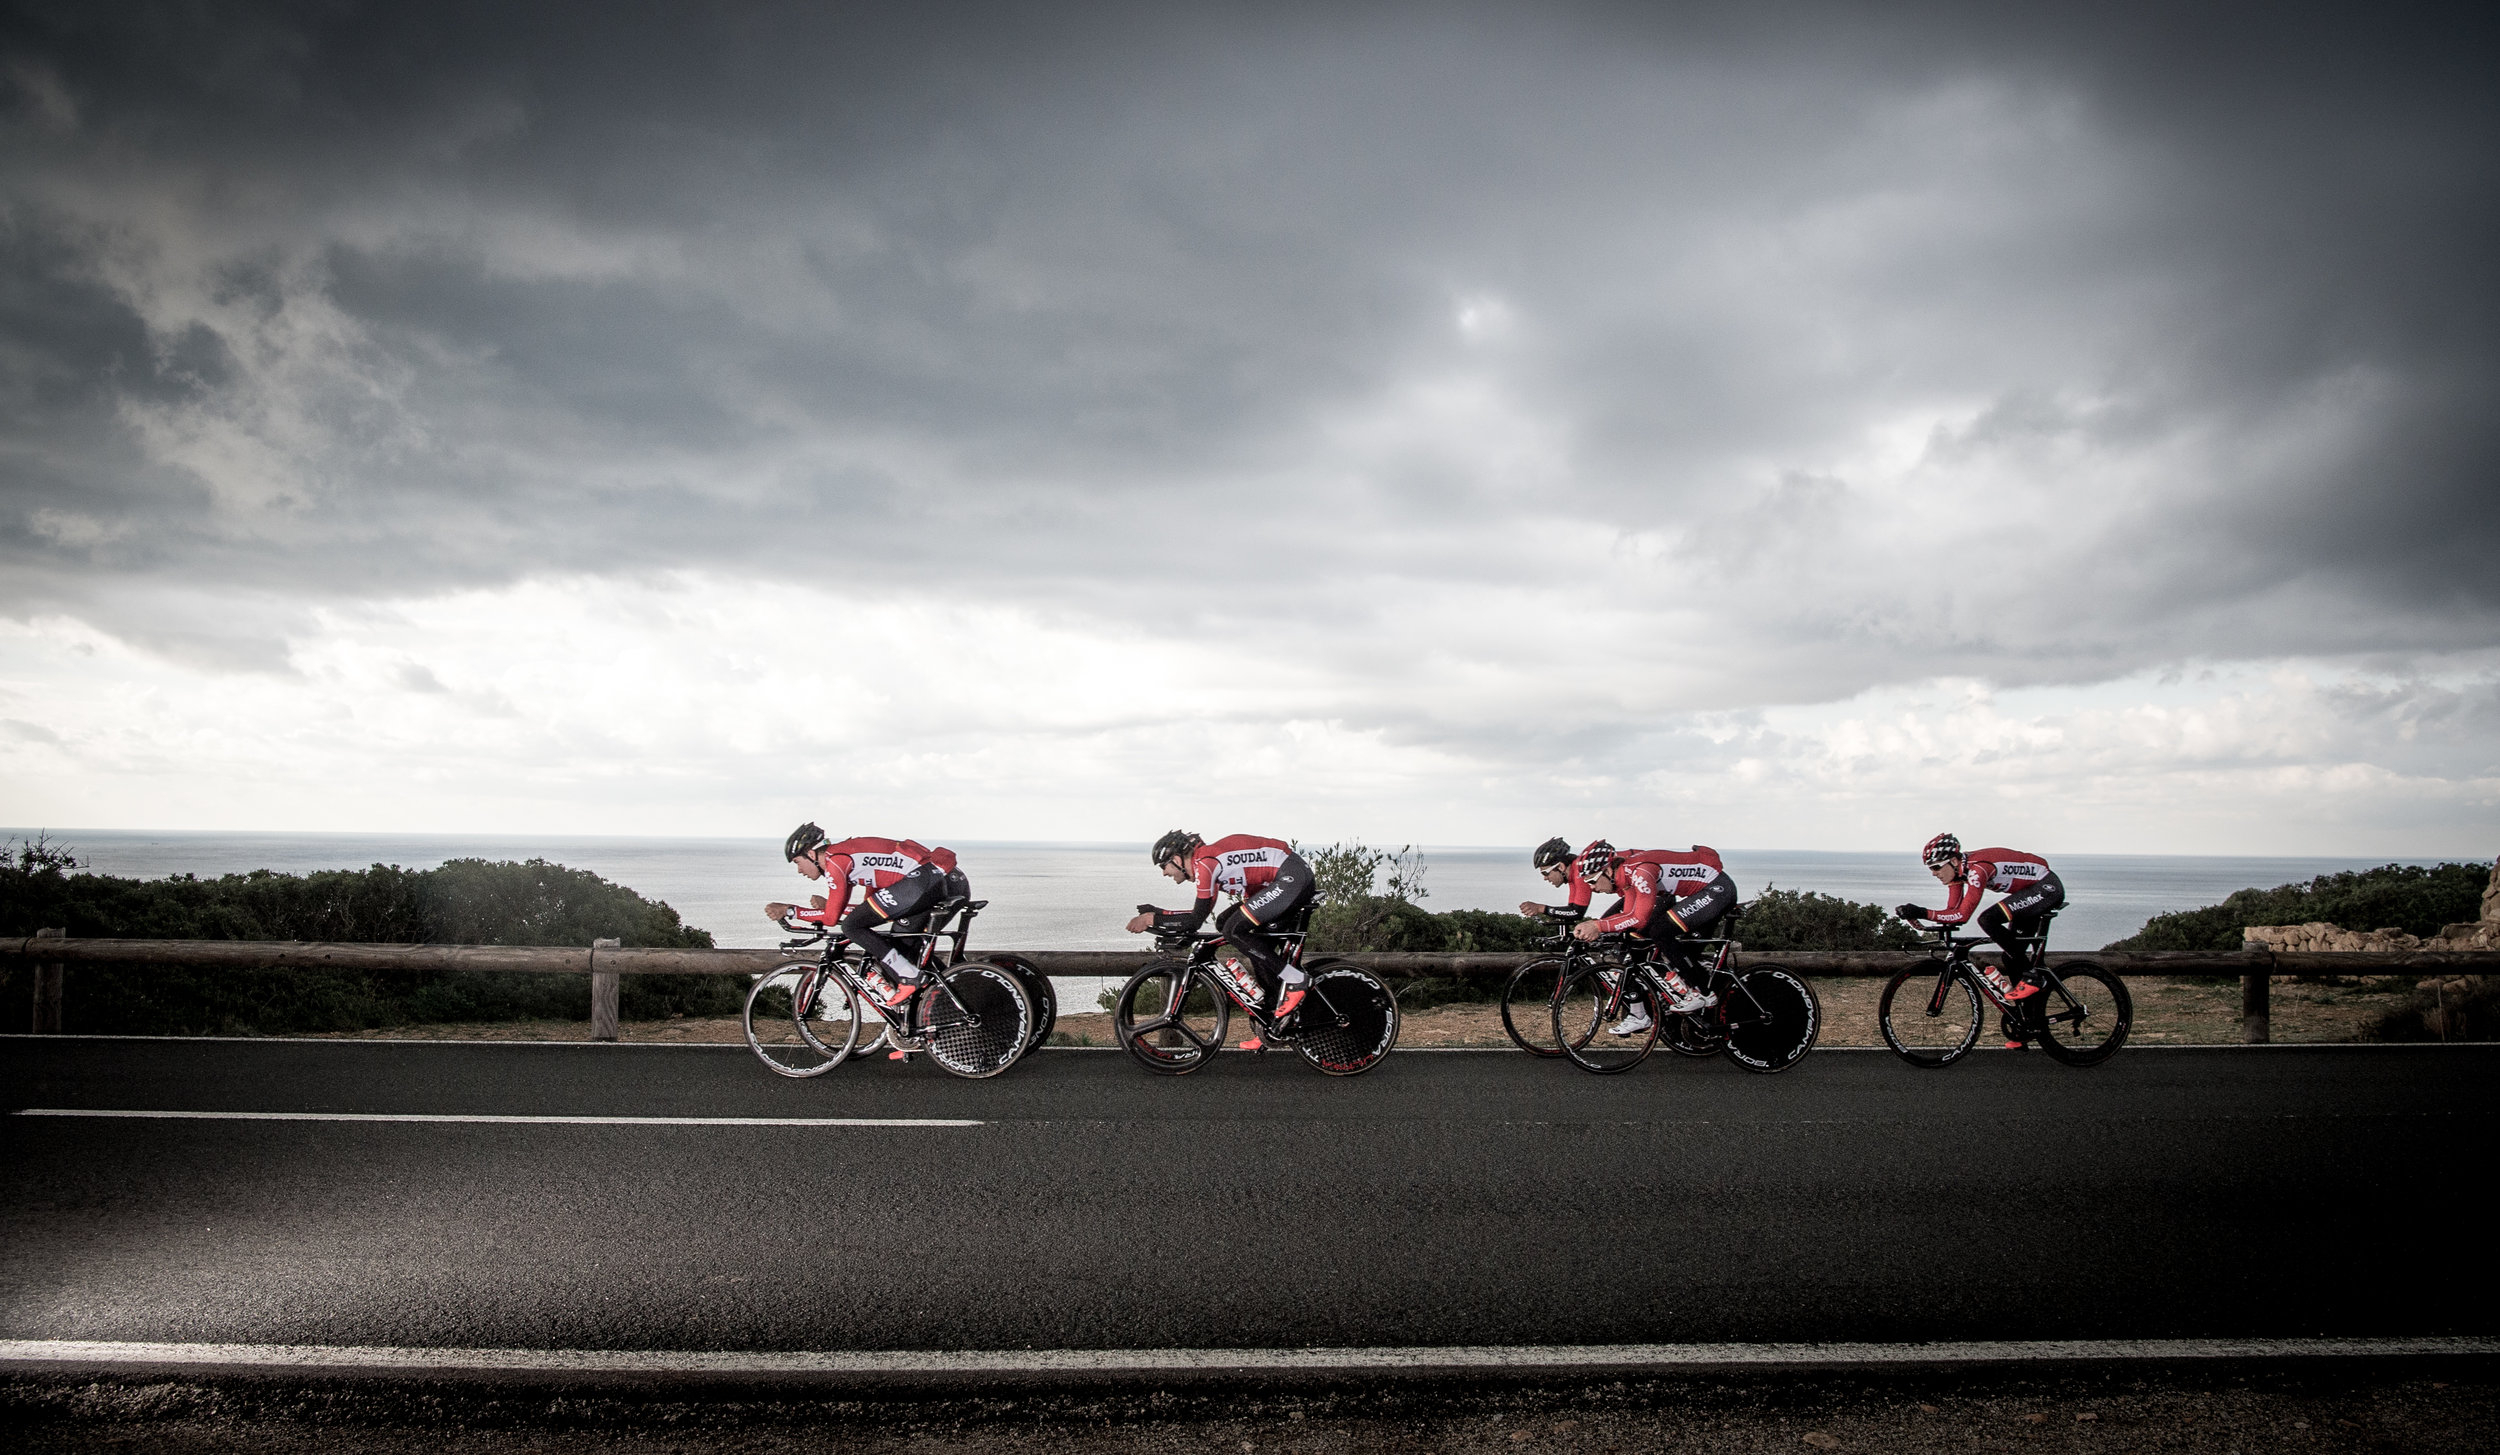 Lotto_Soudal (48 of 1)-79.jpg